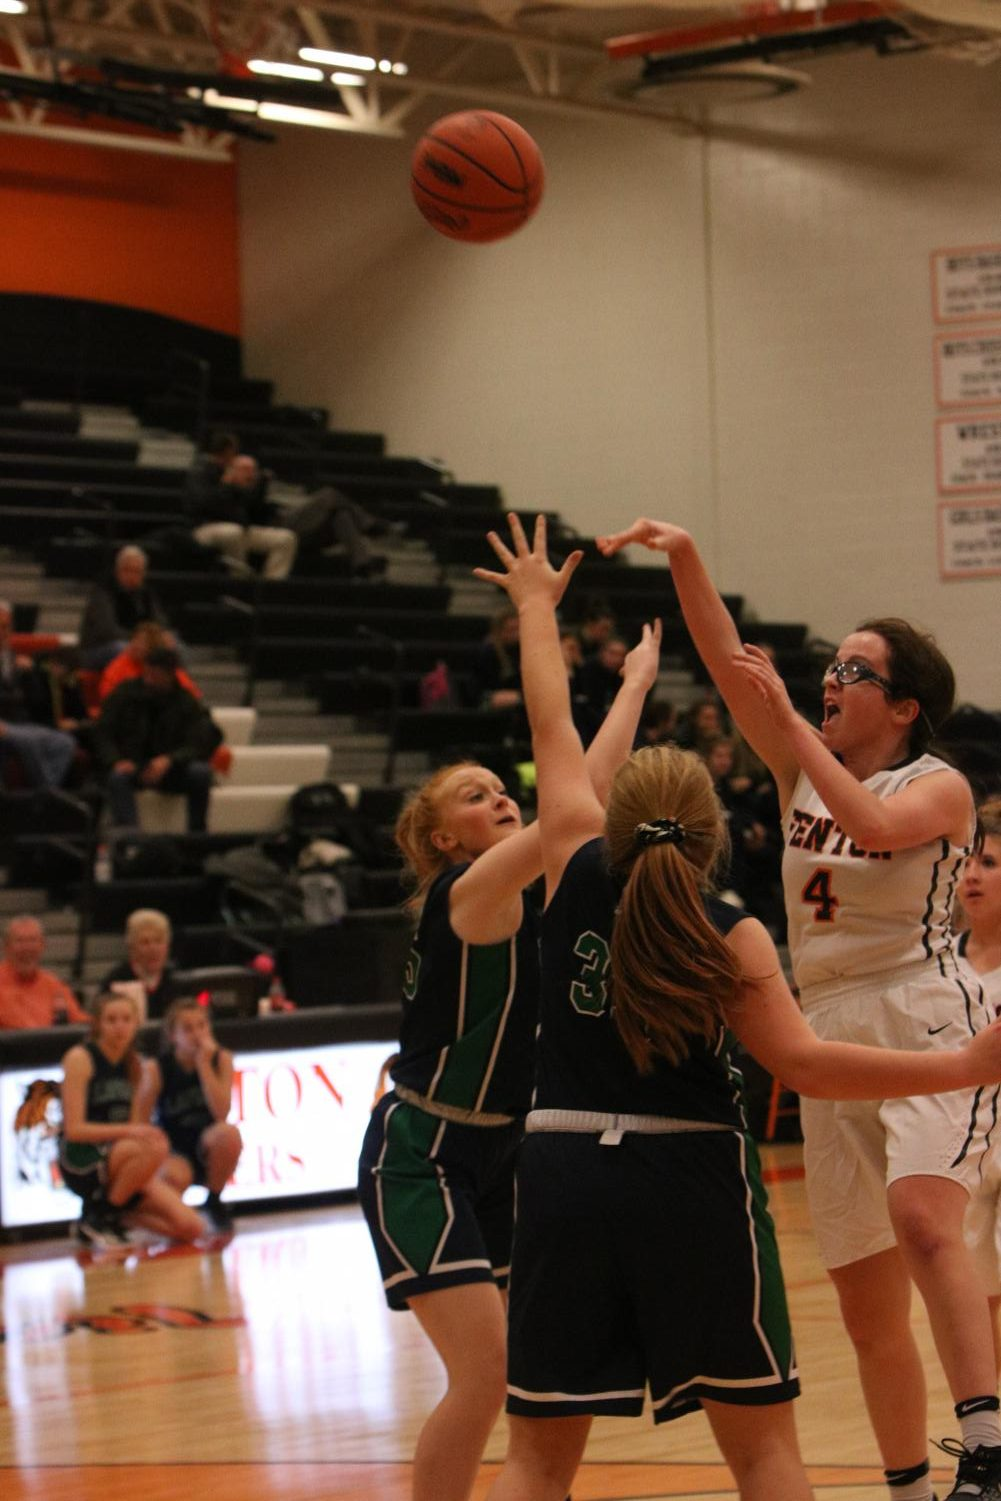 Shooting the basketball, sophomore Lauren Gangwer attempts to score. The JV team played Lapeer on Dec. 3.